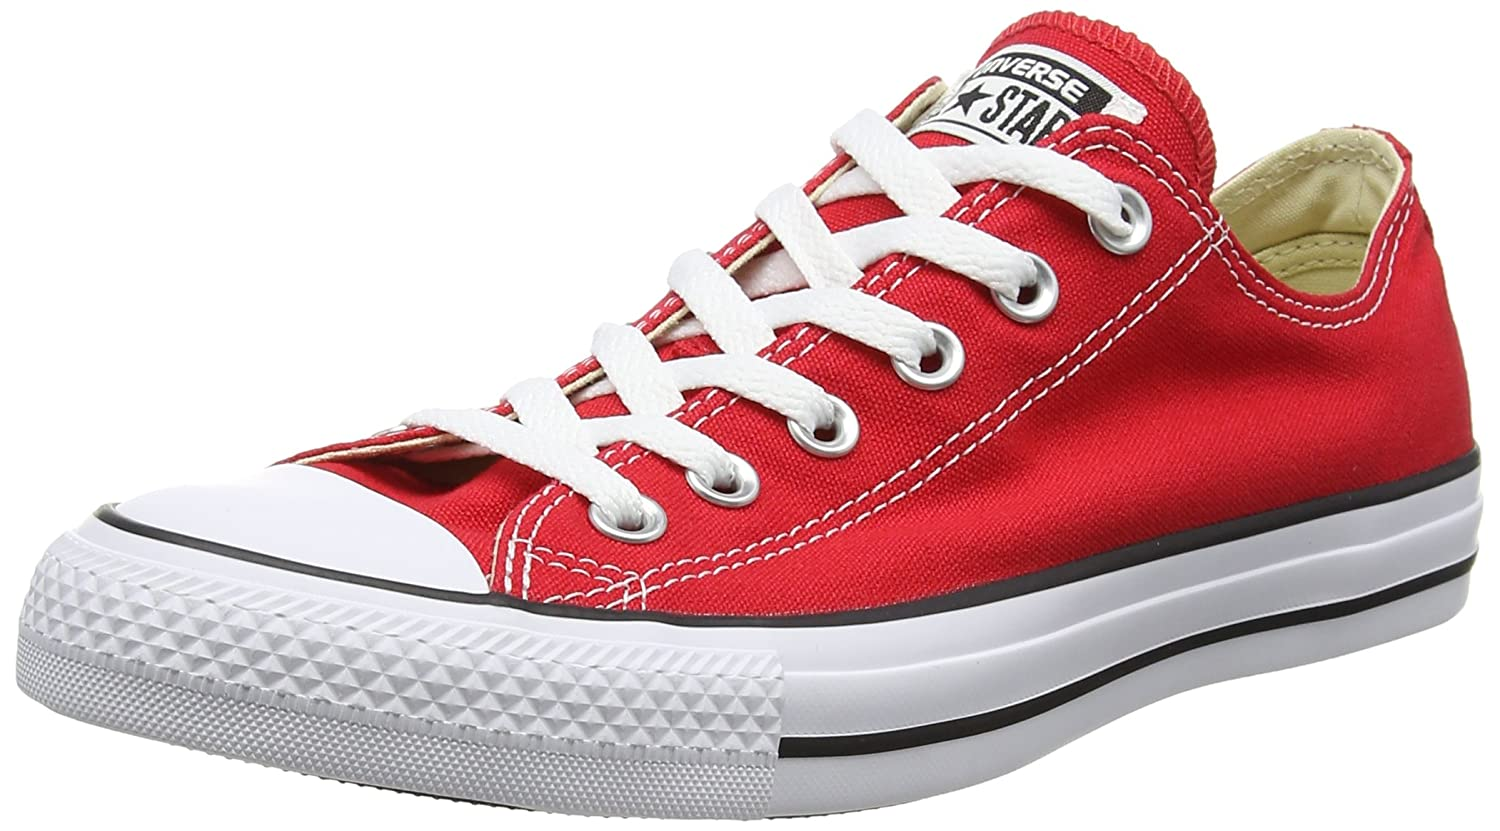 Converse Chuck Taylor All Star Core Ox B004LCIUA0 7.5 B(M) US Women / 5.5 D(M) US Men|RED